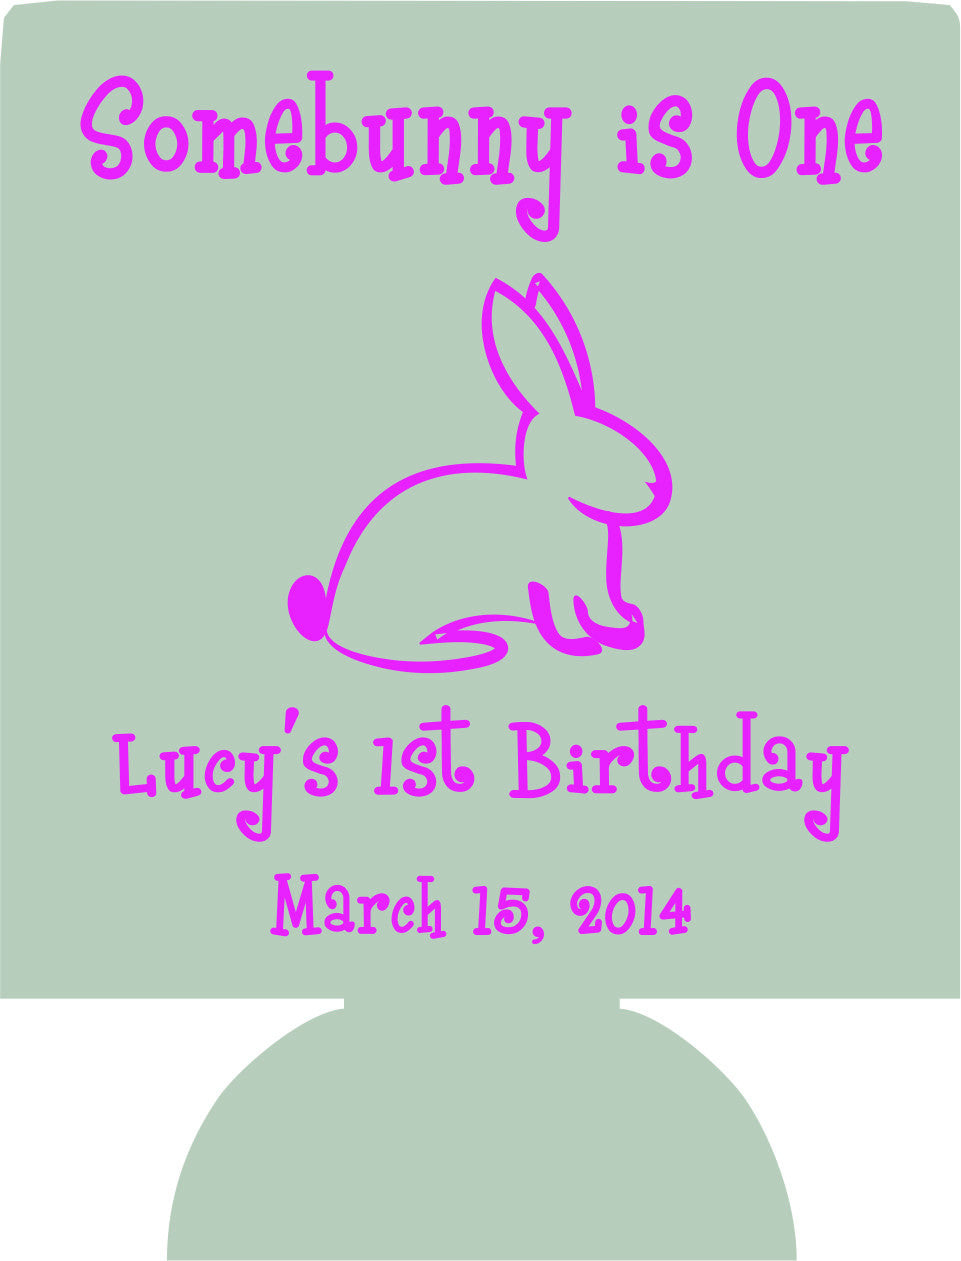 Some Bunny 1st Birthday Koozies kids personalized can coolers 128502700